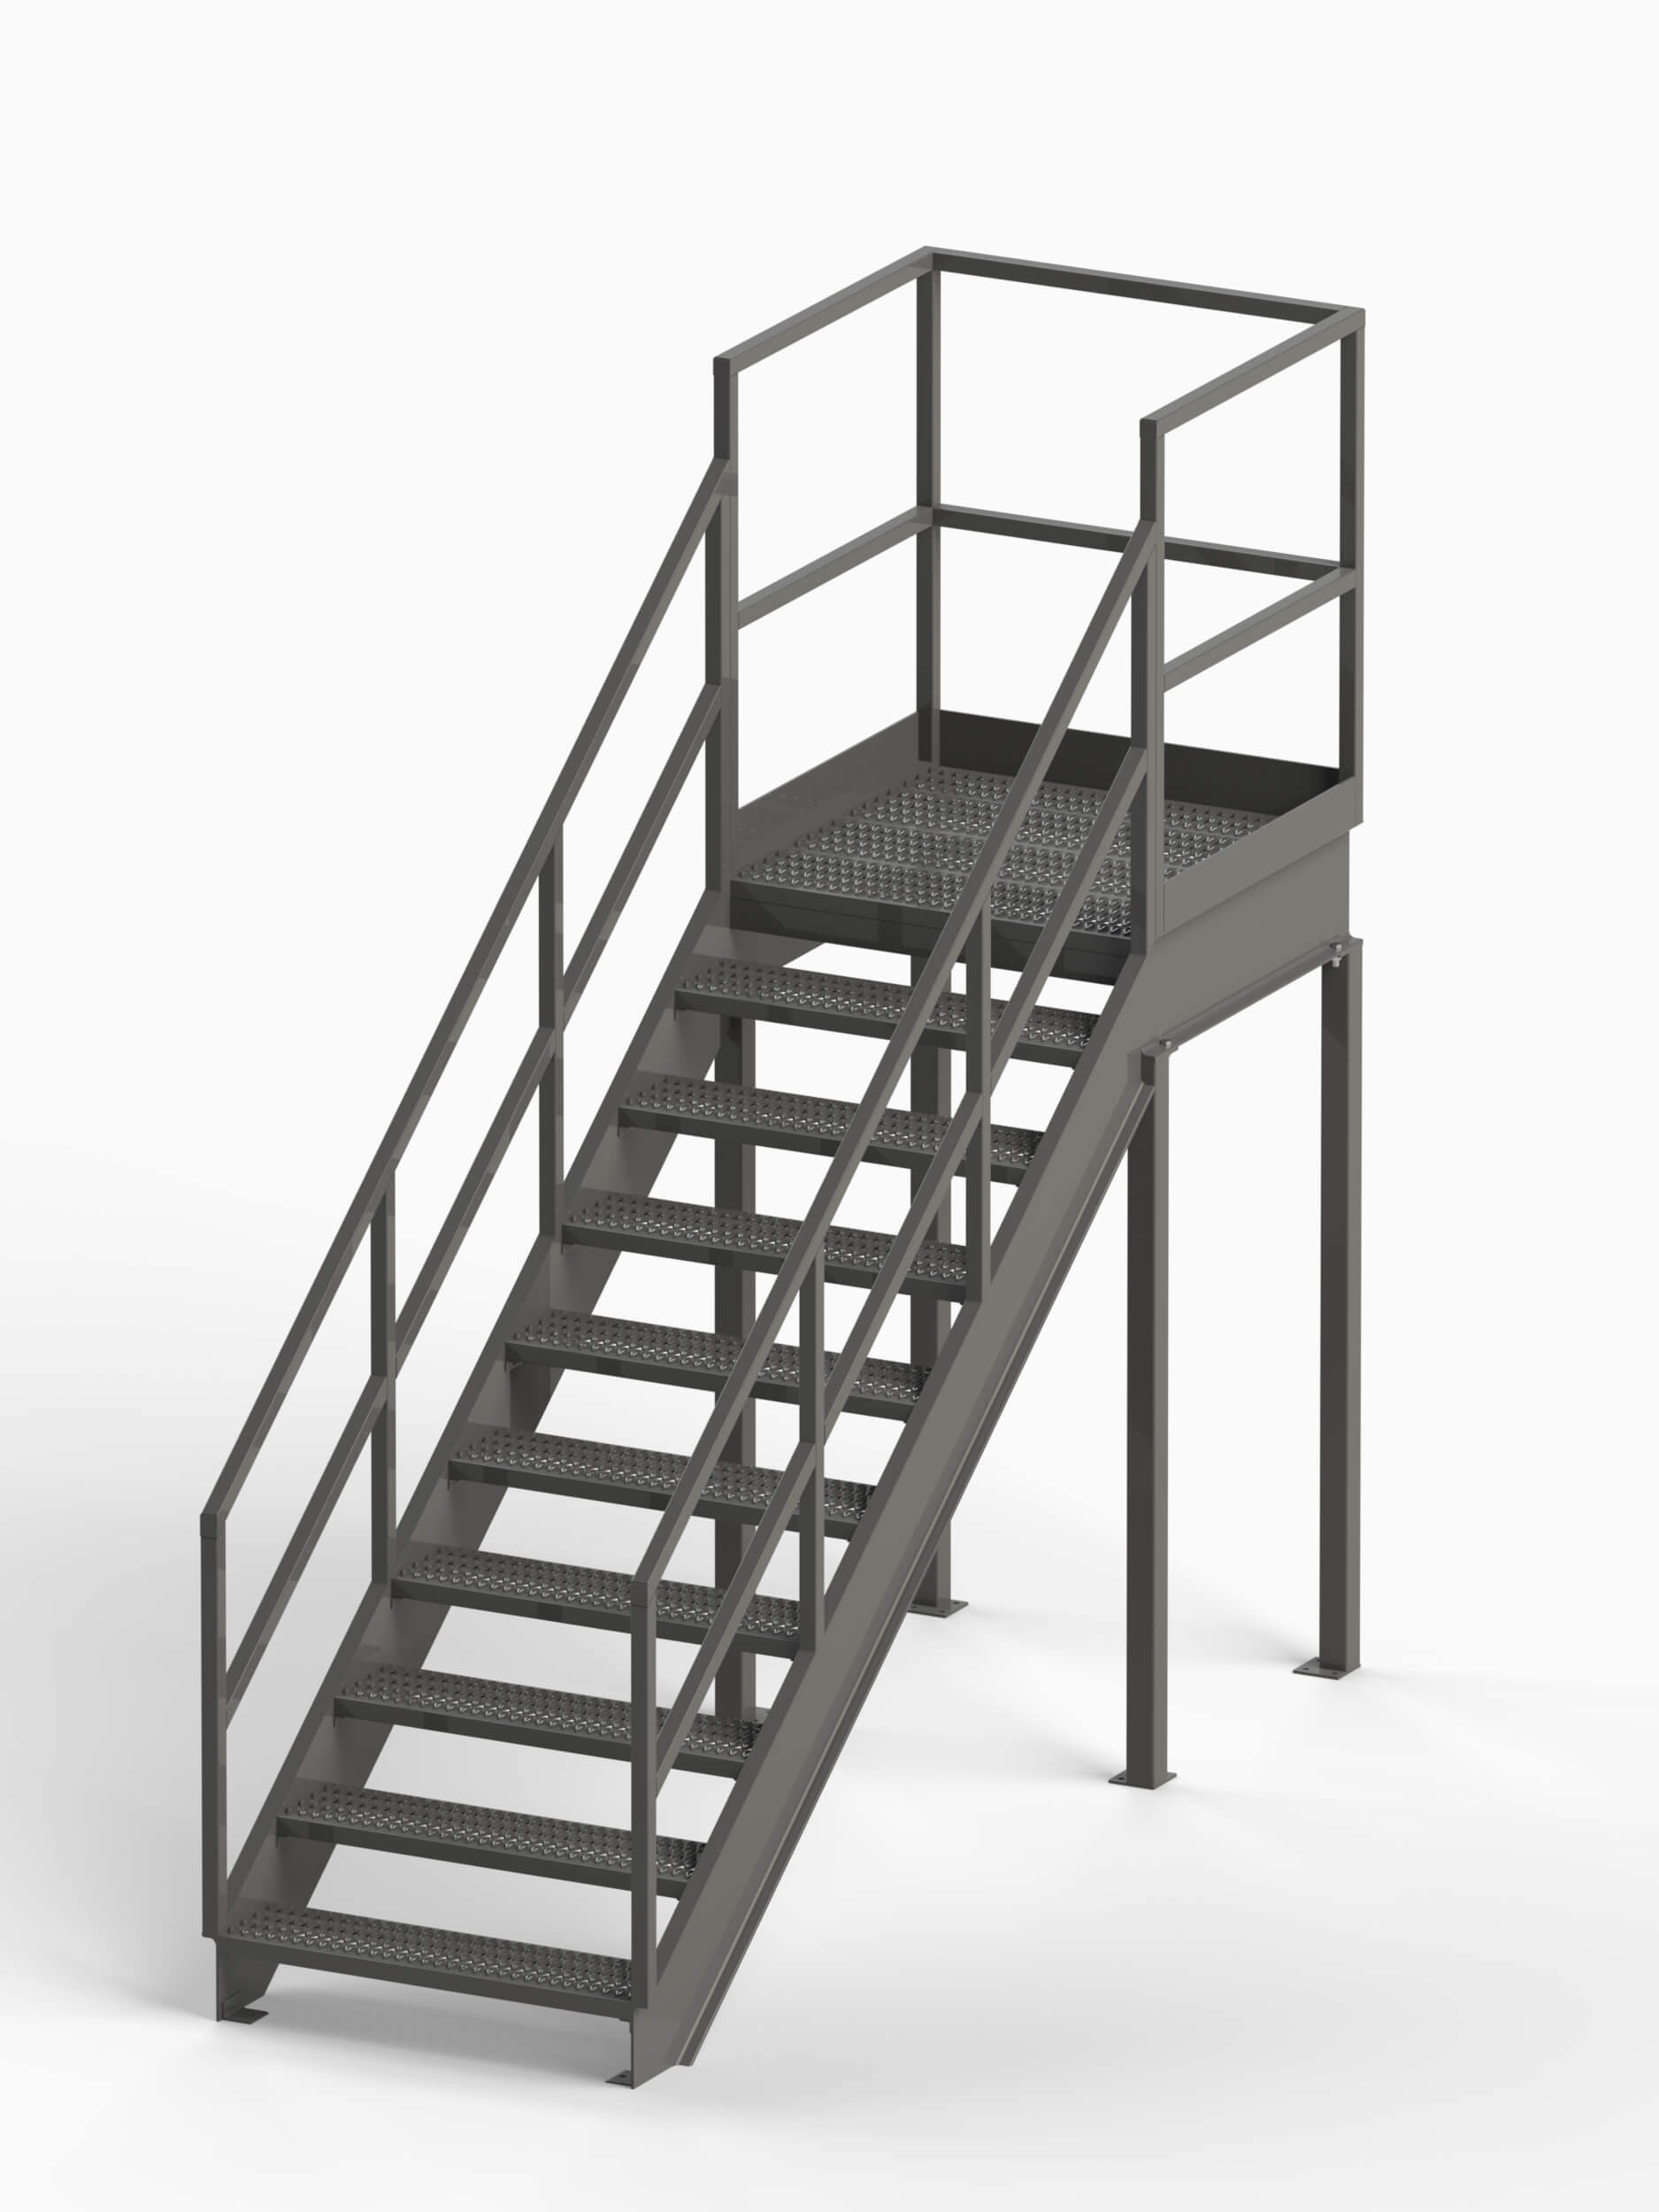 Industrial Stairway with Platform OSHA Compliant - EGA Products